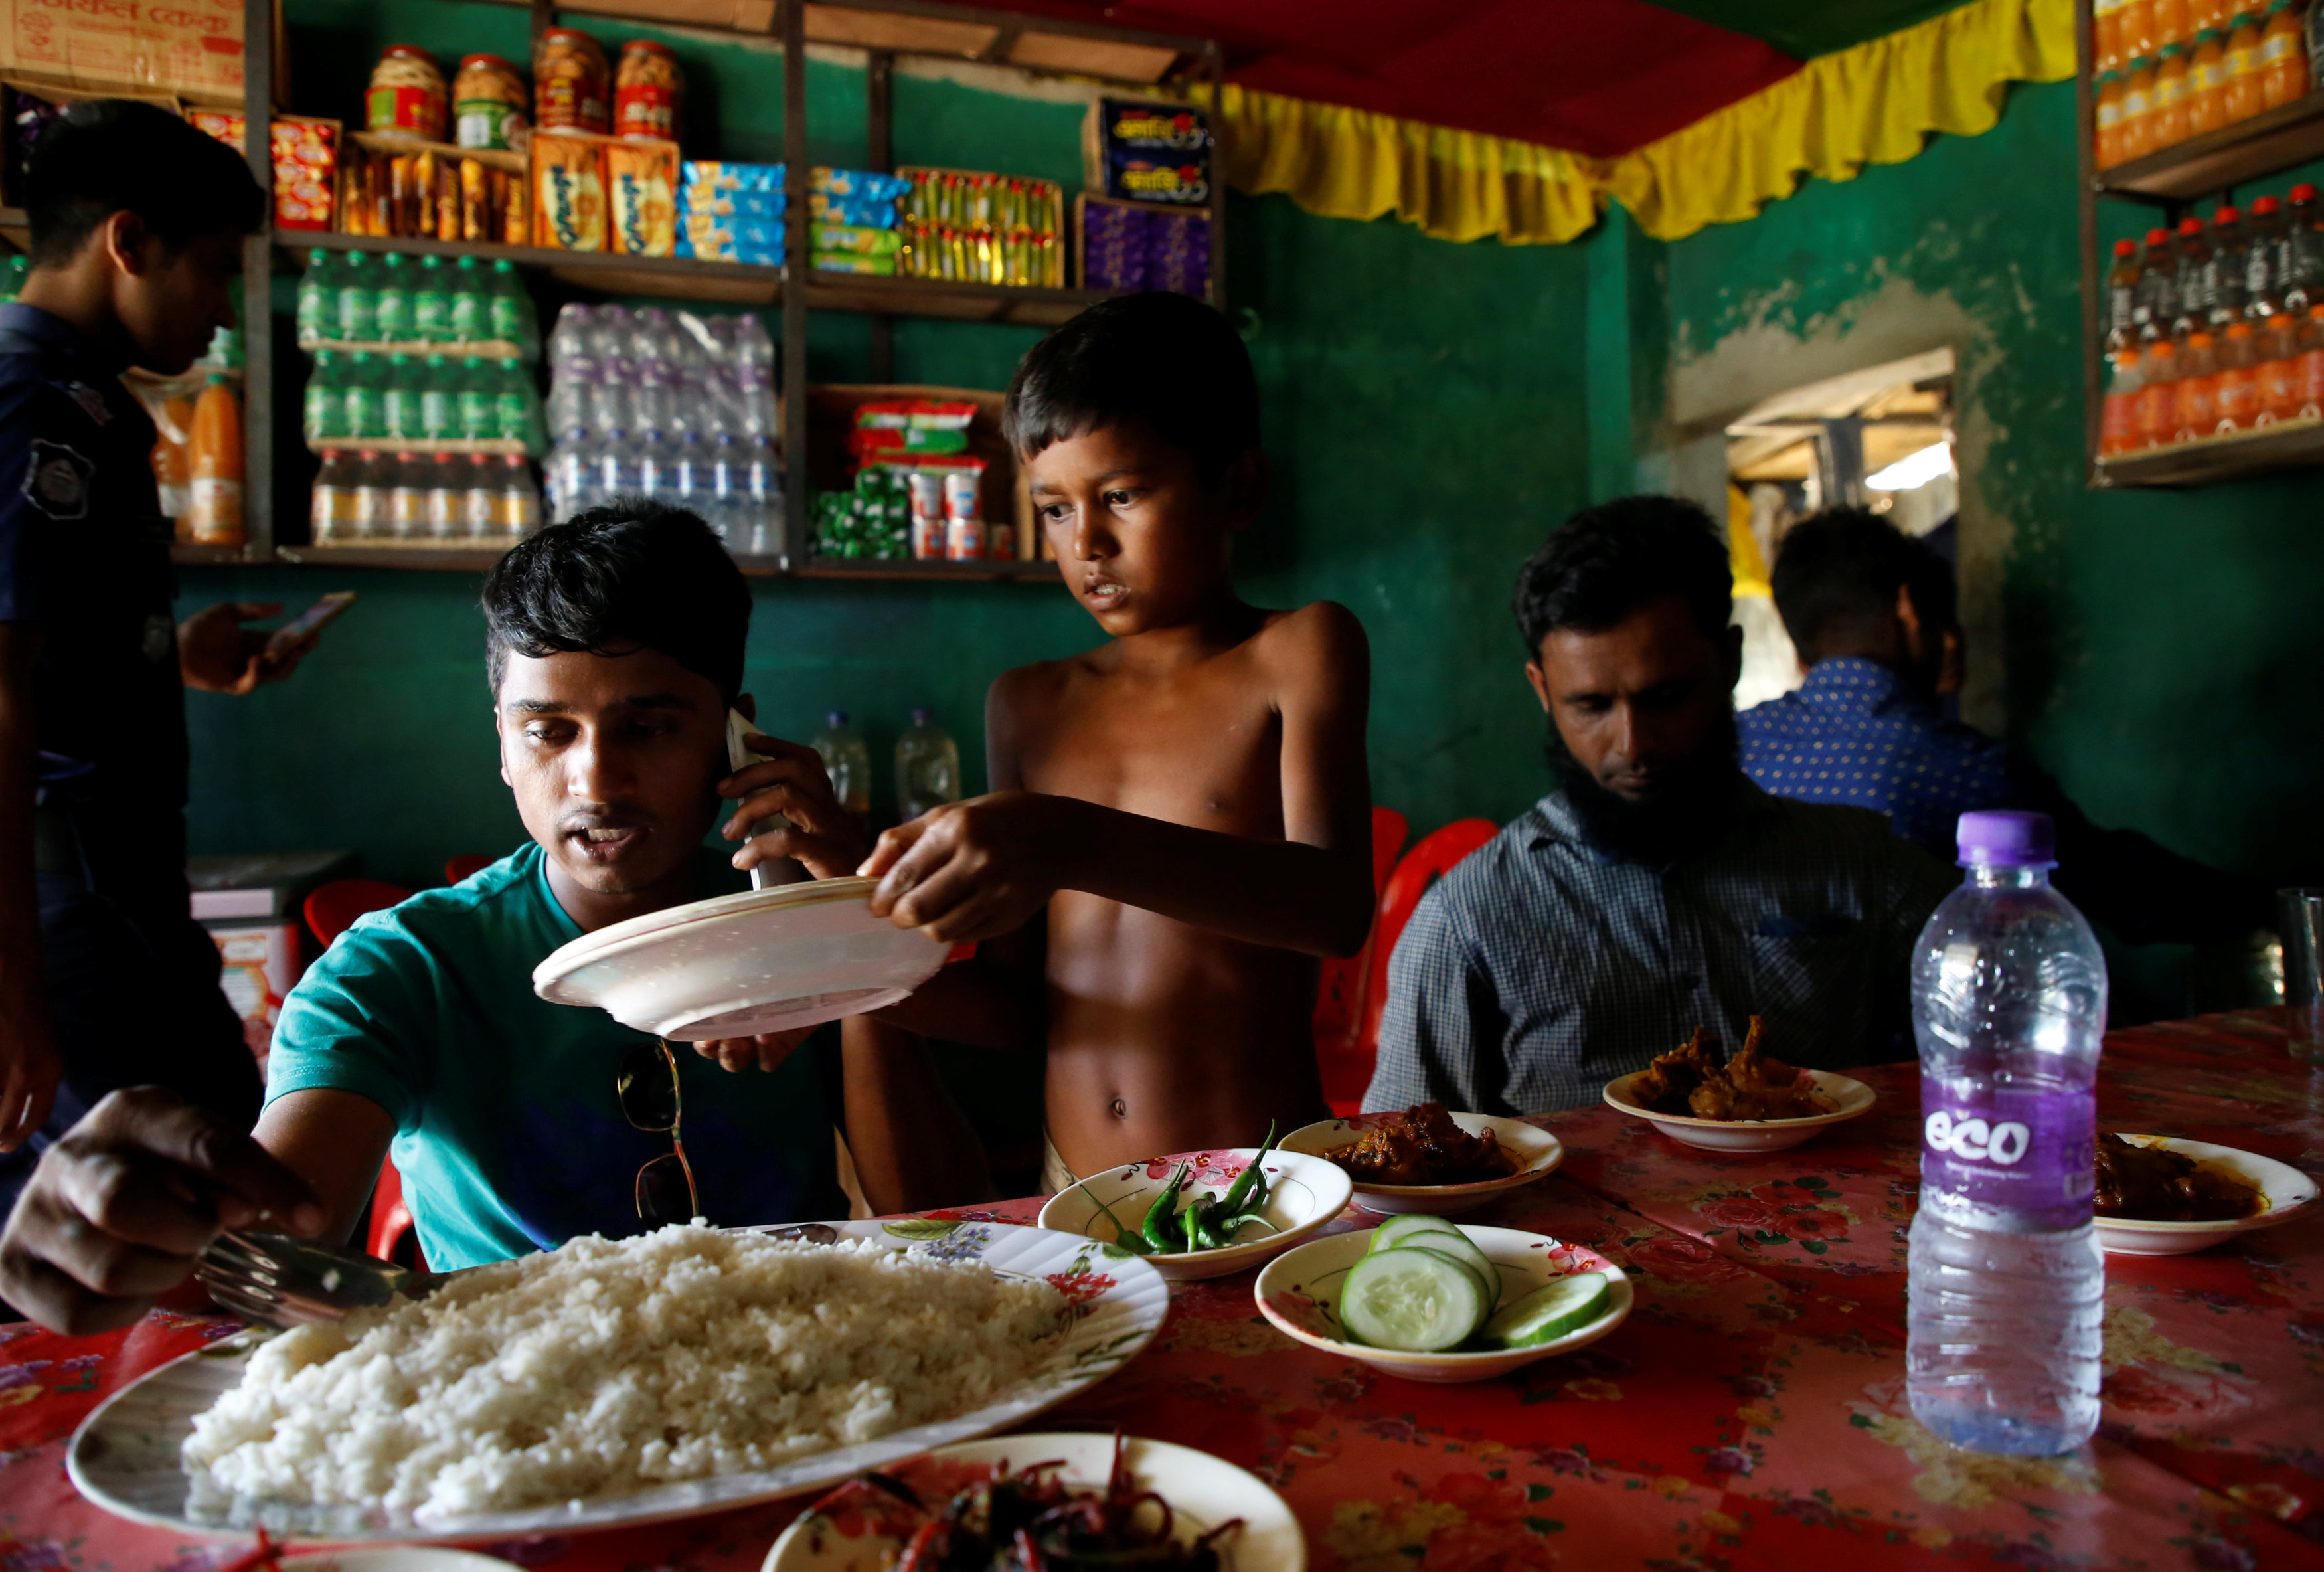 Azimul Hasan, 10, a Rohingya refugee boy, serves plates at a roadside hotel where he works at Jamtoli, close to Palong Khali camp, near Cox's Bazar, Bangladesh, November 12, 2017.